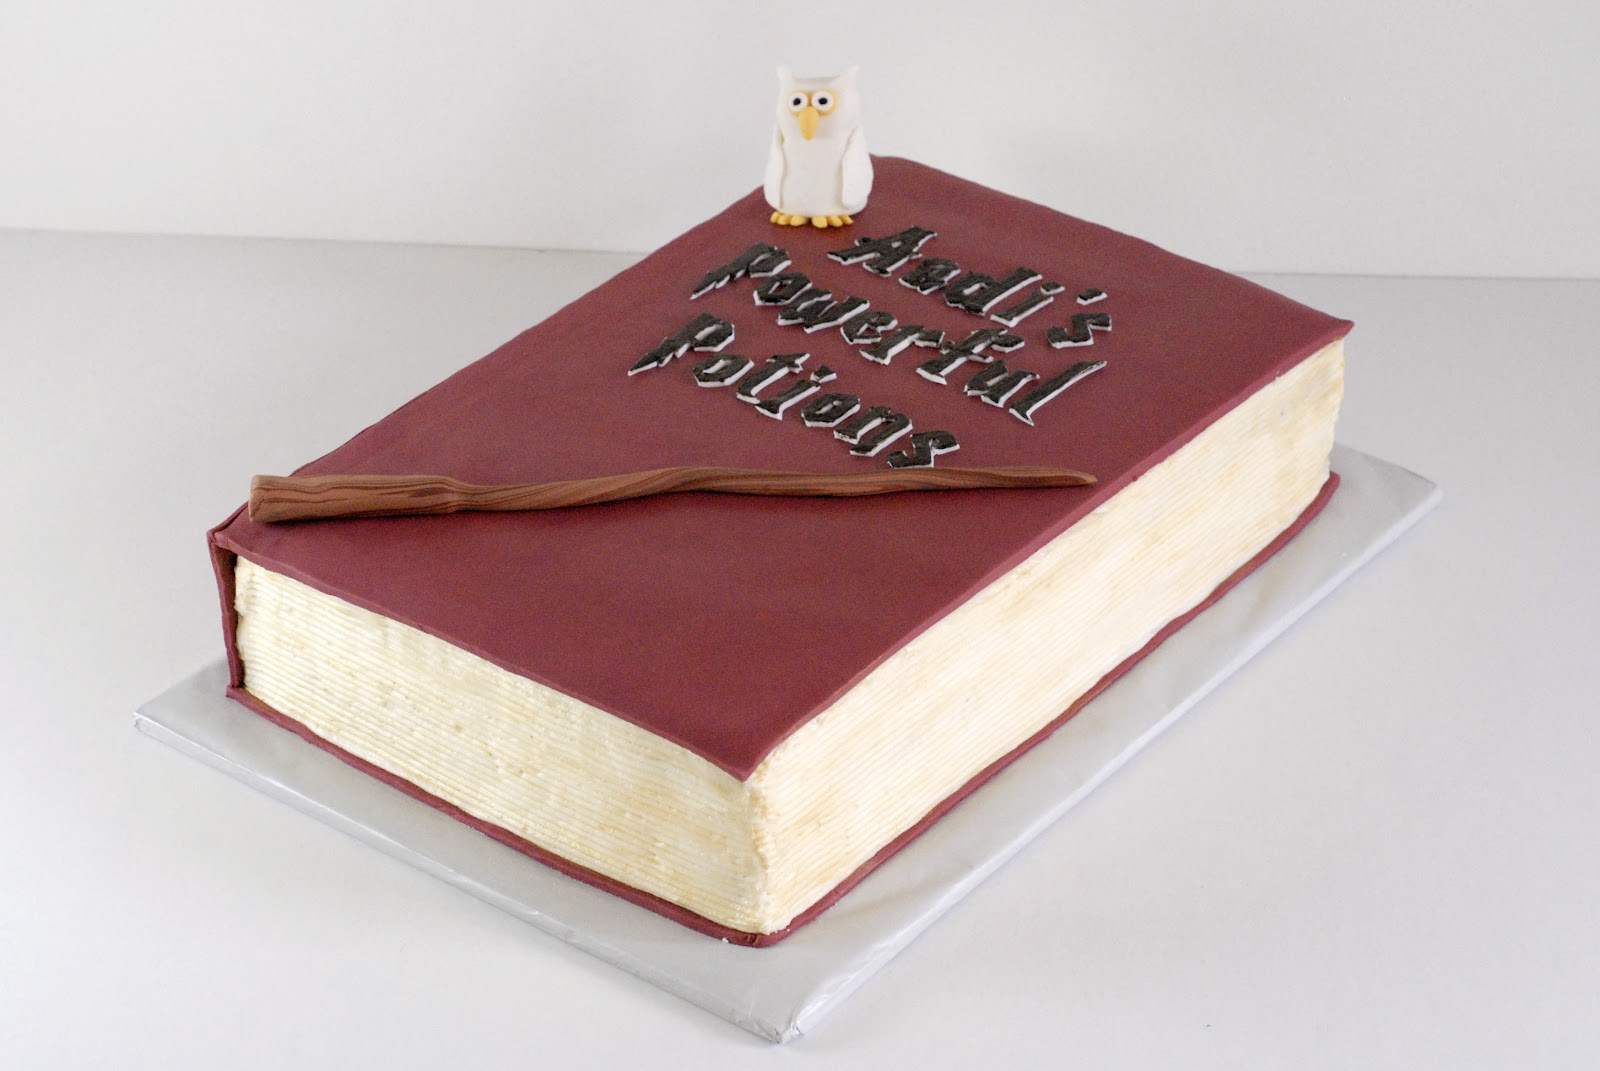 How To Make A Harry Potter Spell Book Cake